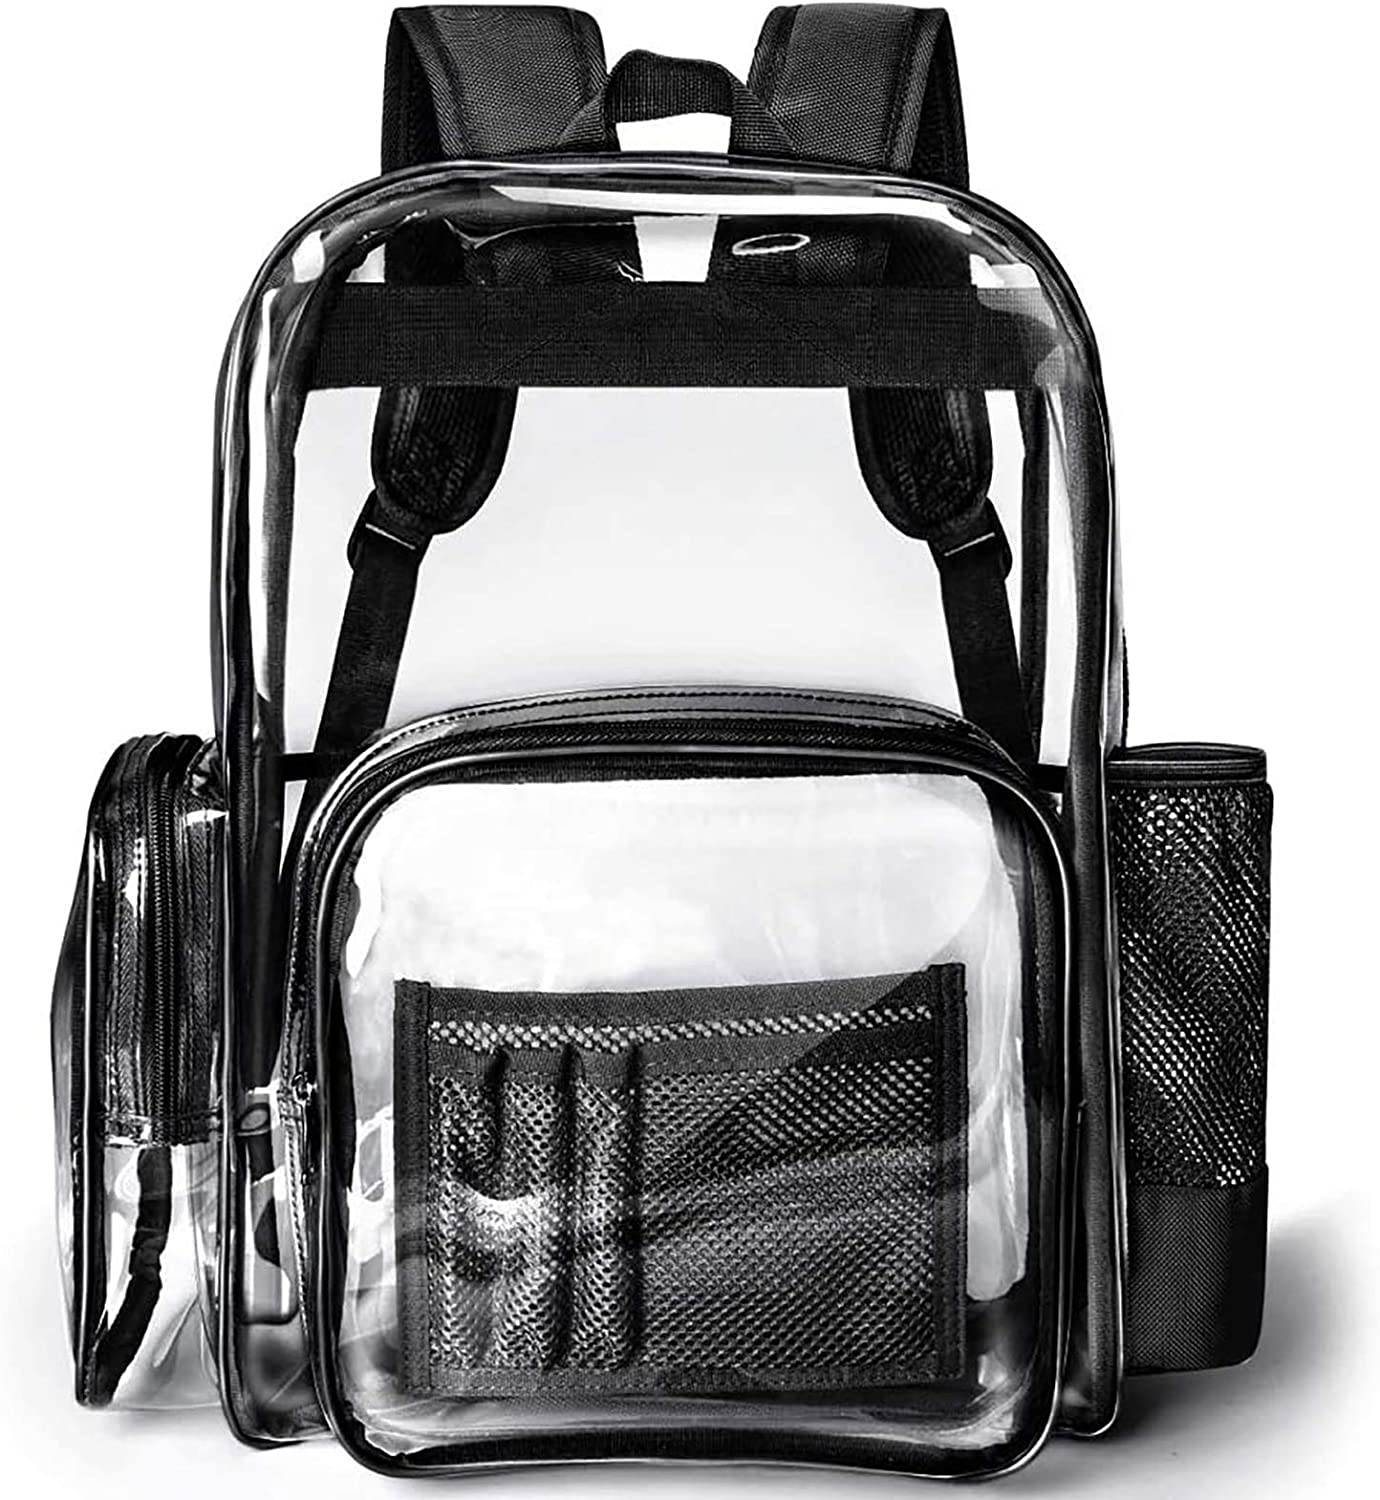 Clear Backpack, Packasso Heavy Duty Clear Bag for Adults, Boys, Girls, Stadium